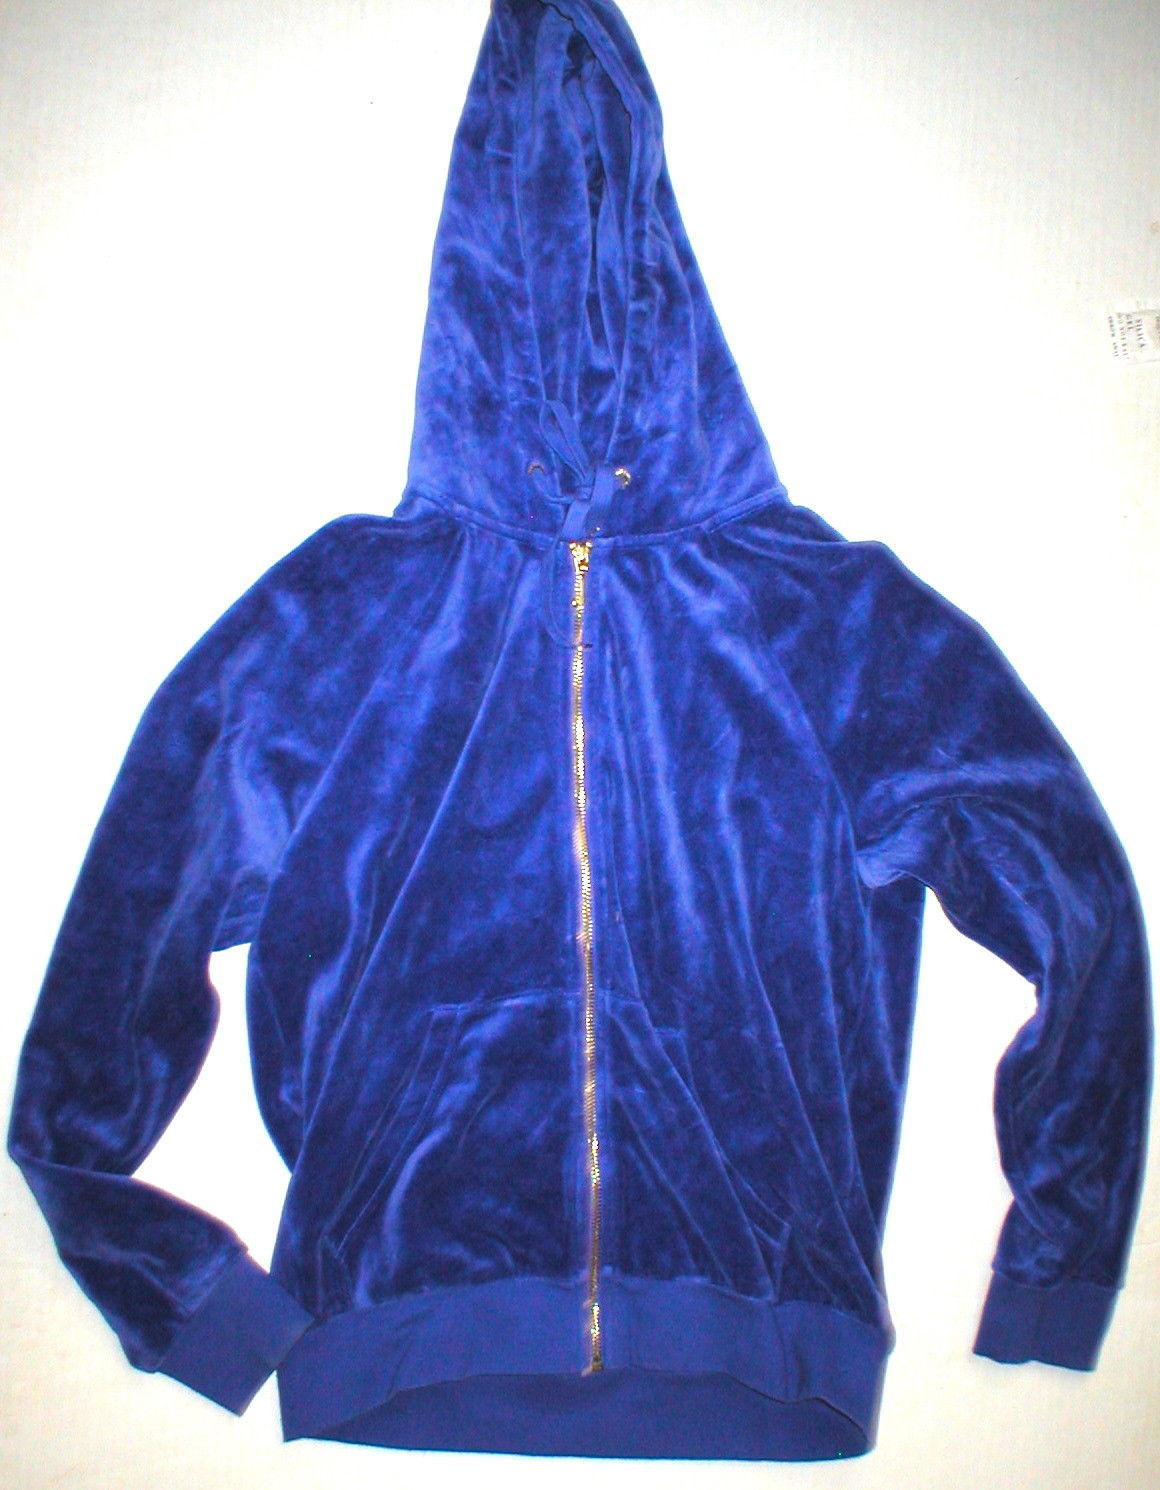 New Womens M Juicy Couture Velour Hoodie Purple Jacket Pretty M Bright Relaxed